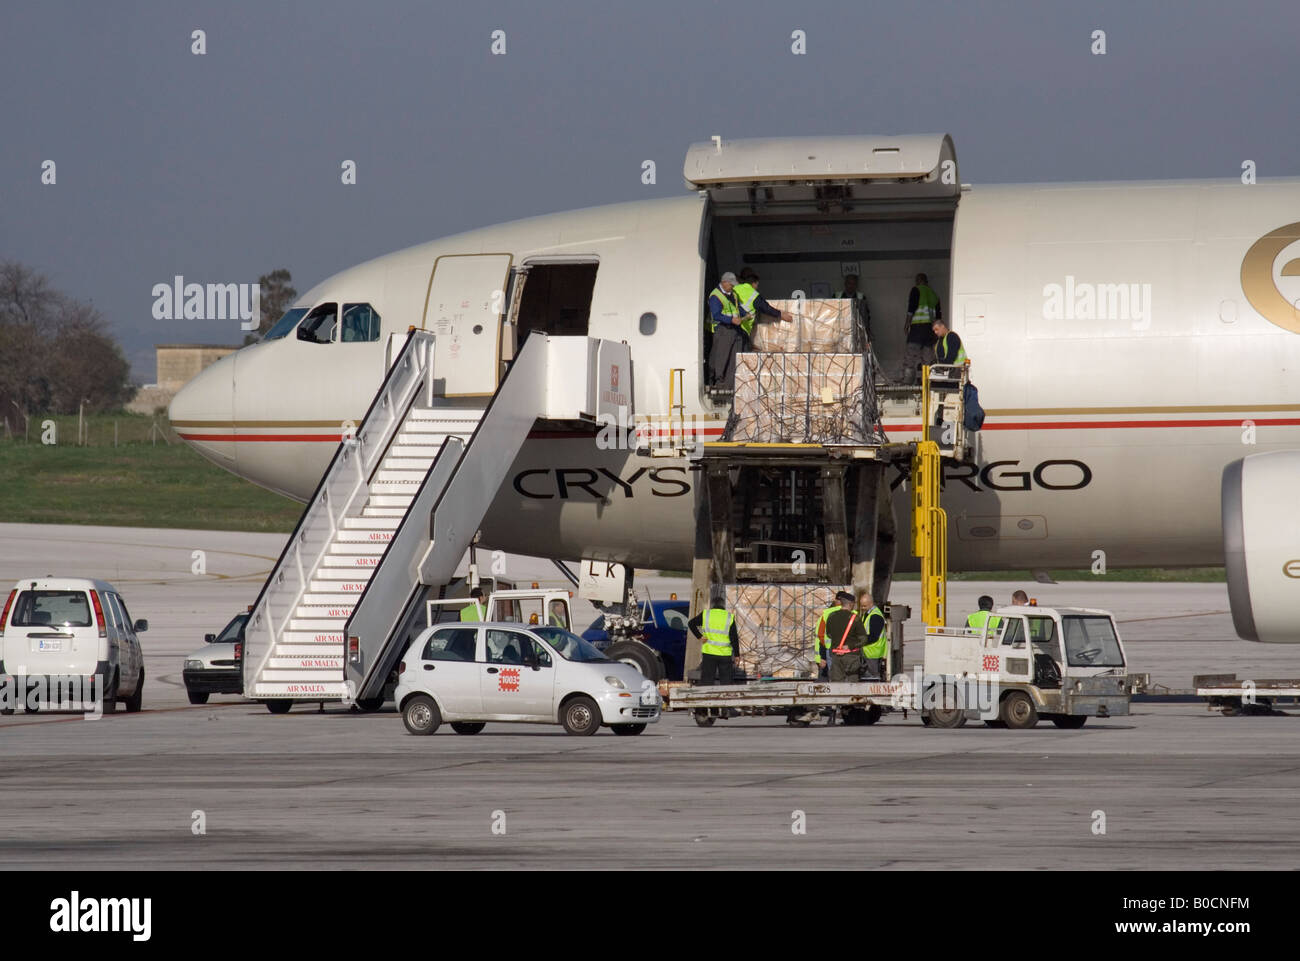 Commercial air freight transport logistics. Loading an Etihad Crystal Cargo Airbus A300 jet plane - Stock Image